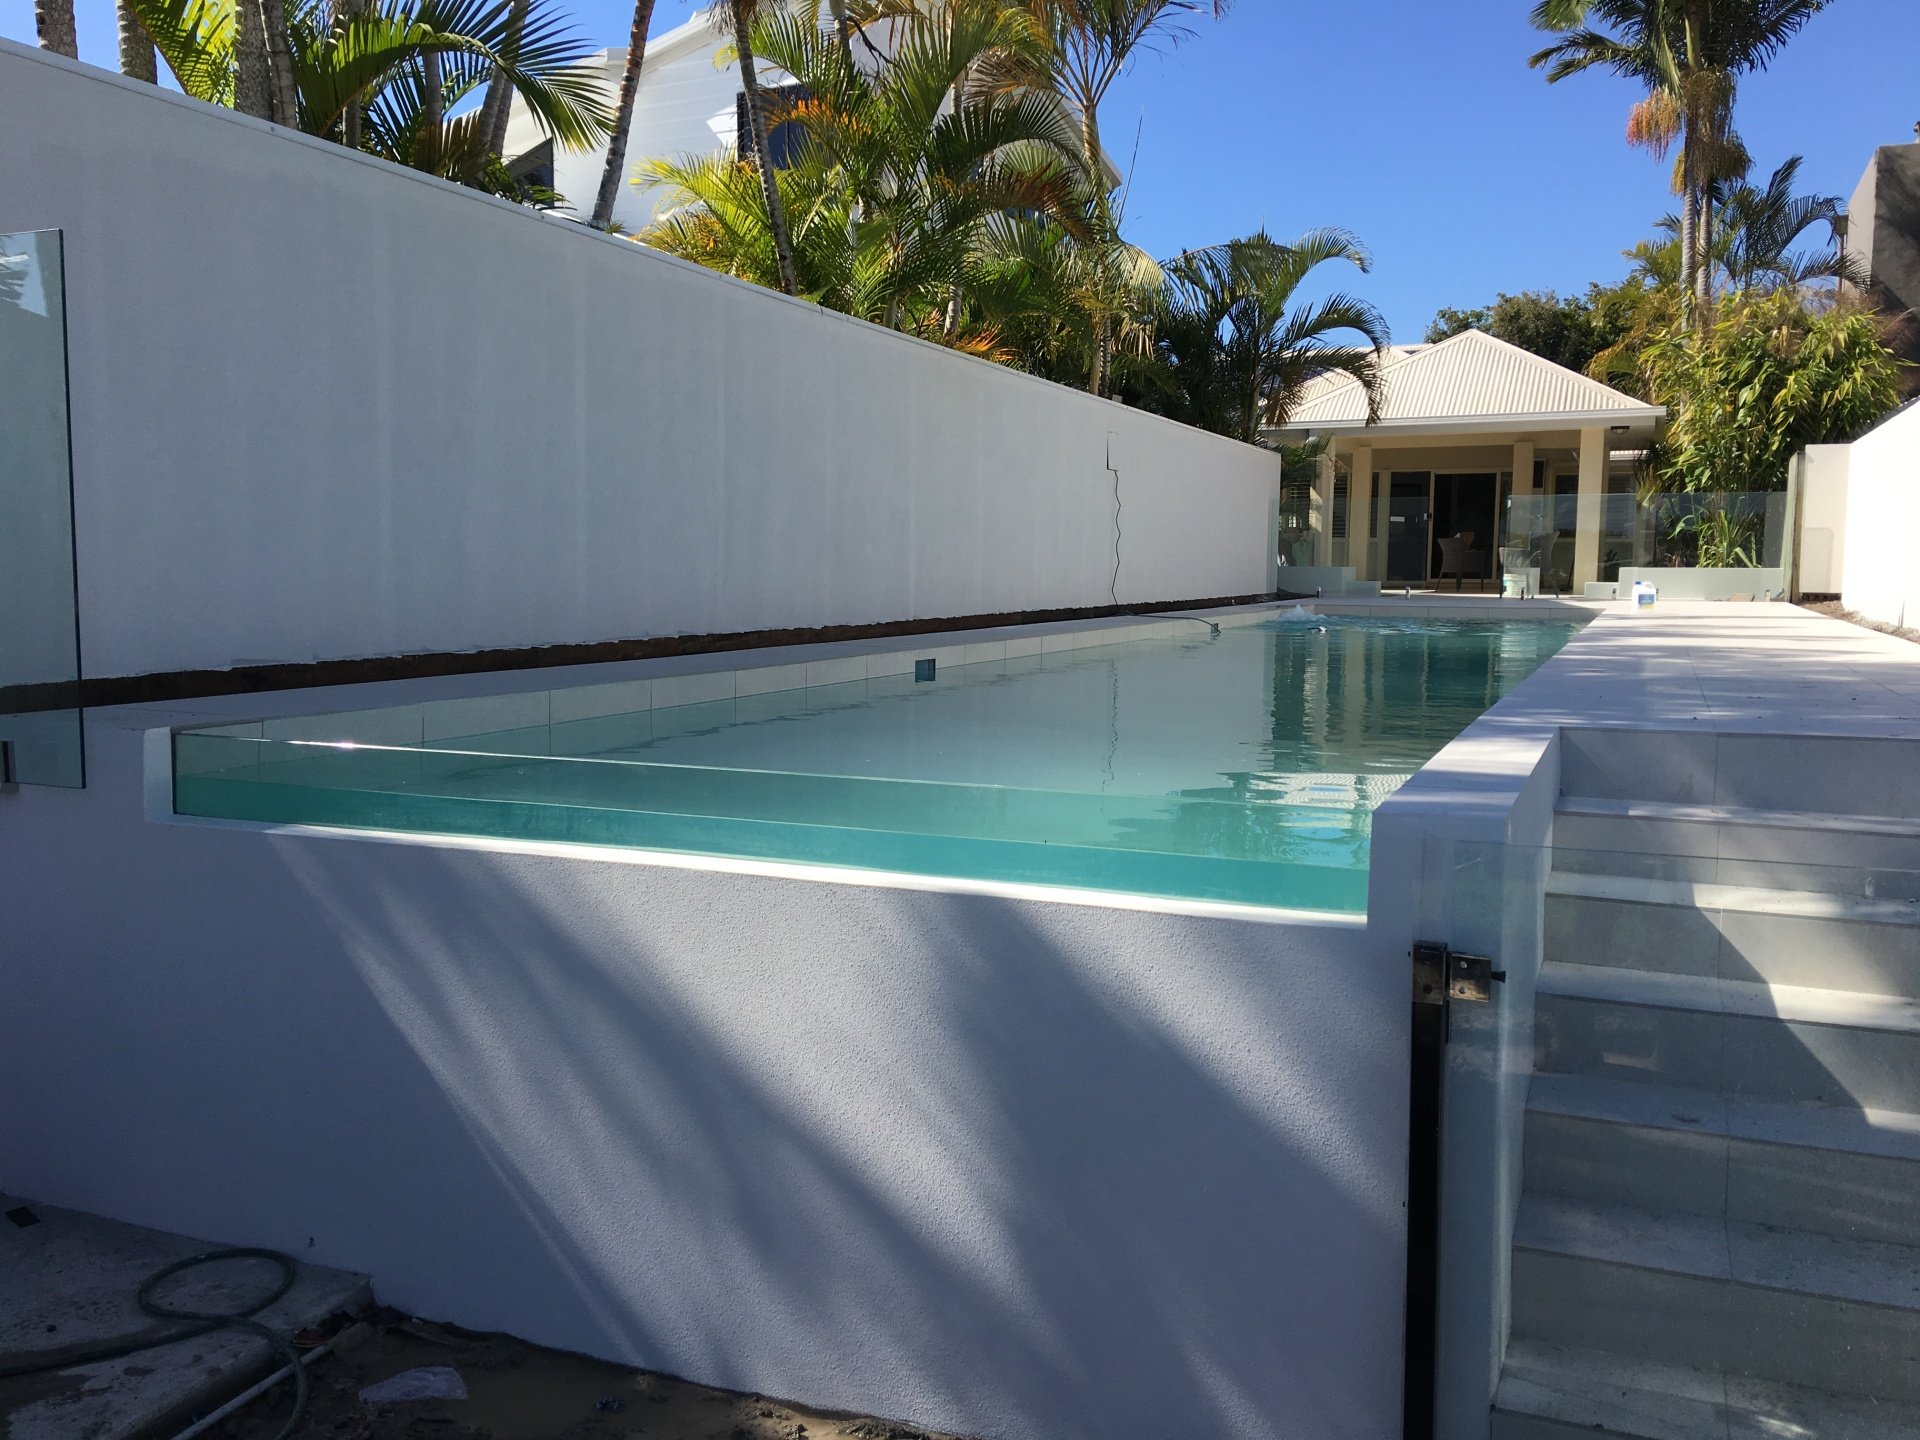 Pool builder sunshine coast